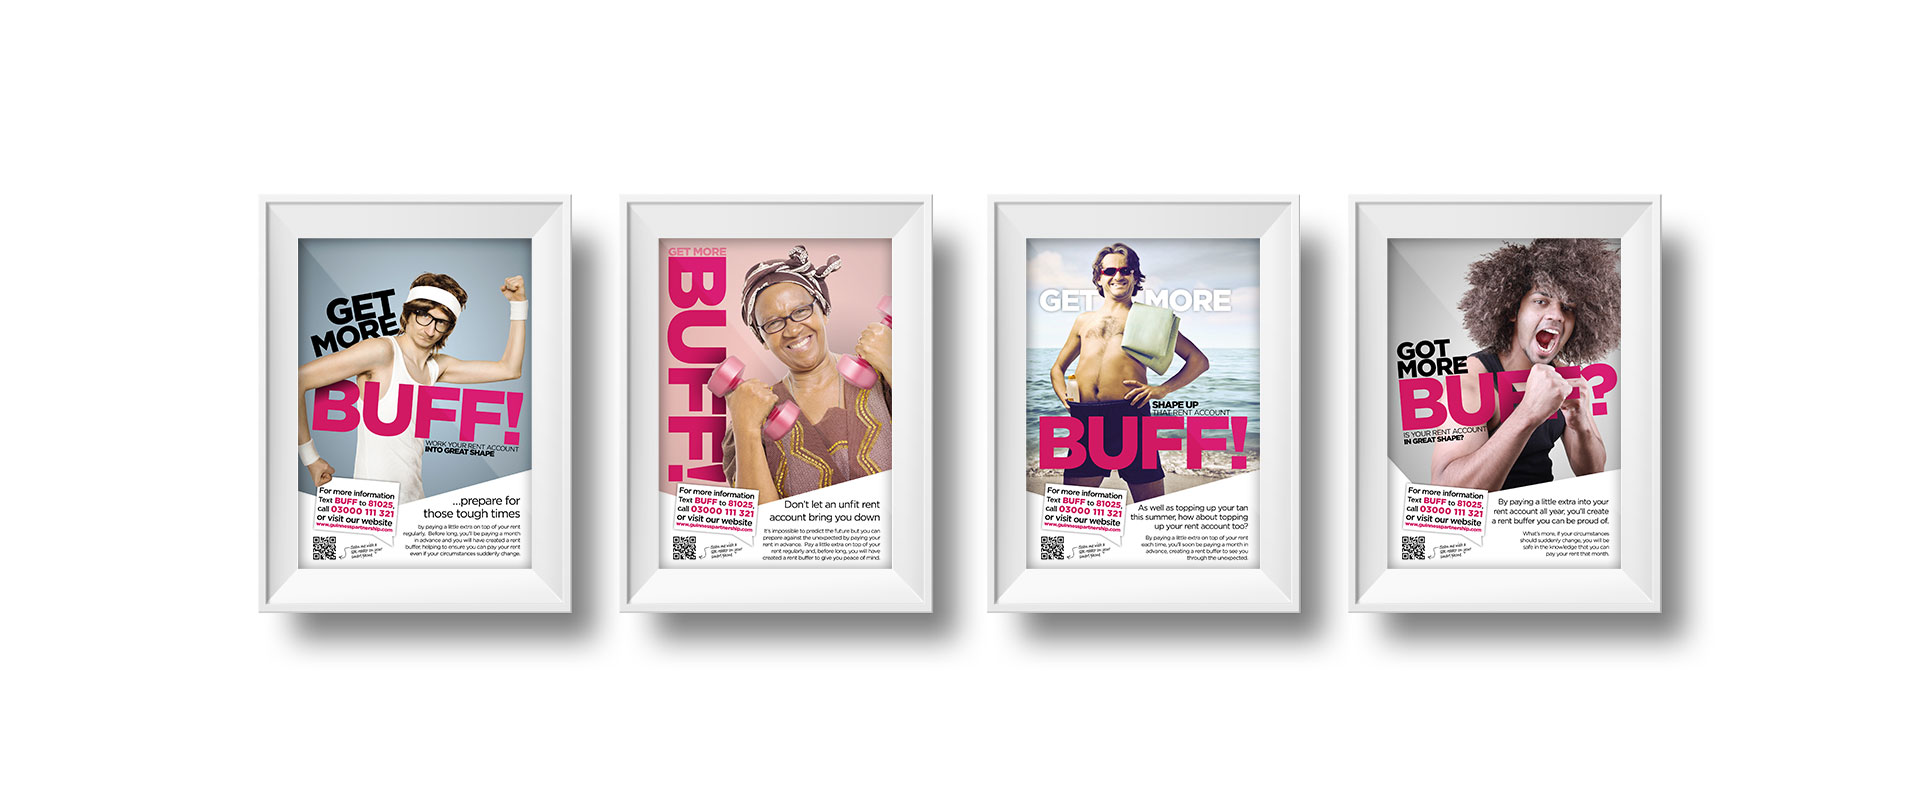 Get More Buff Campaign Poster Series, The Guinness Partnership | Our work - Astwood Design